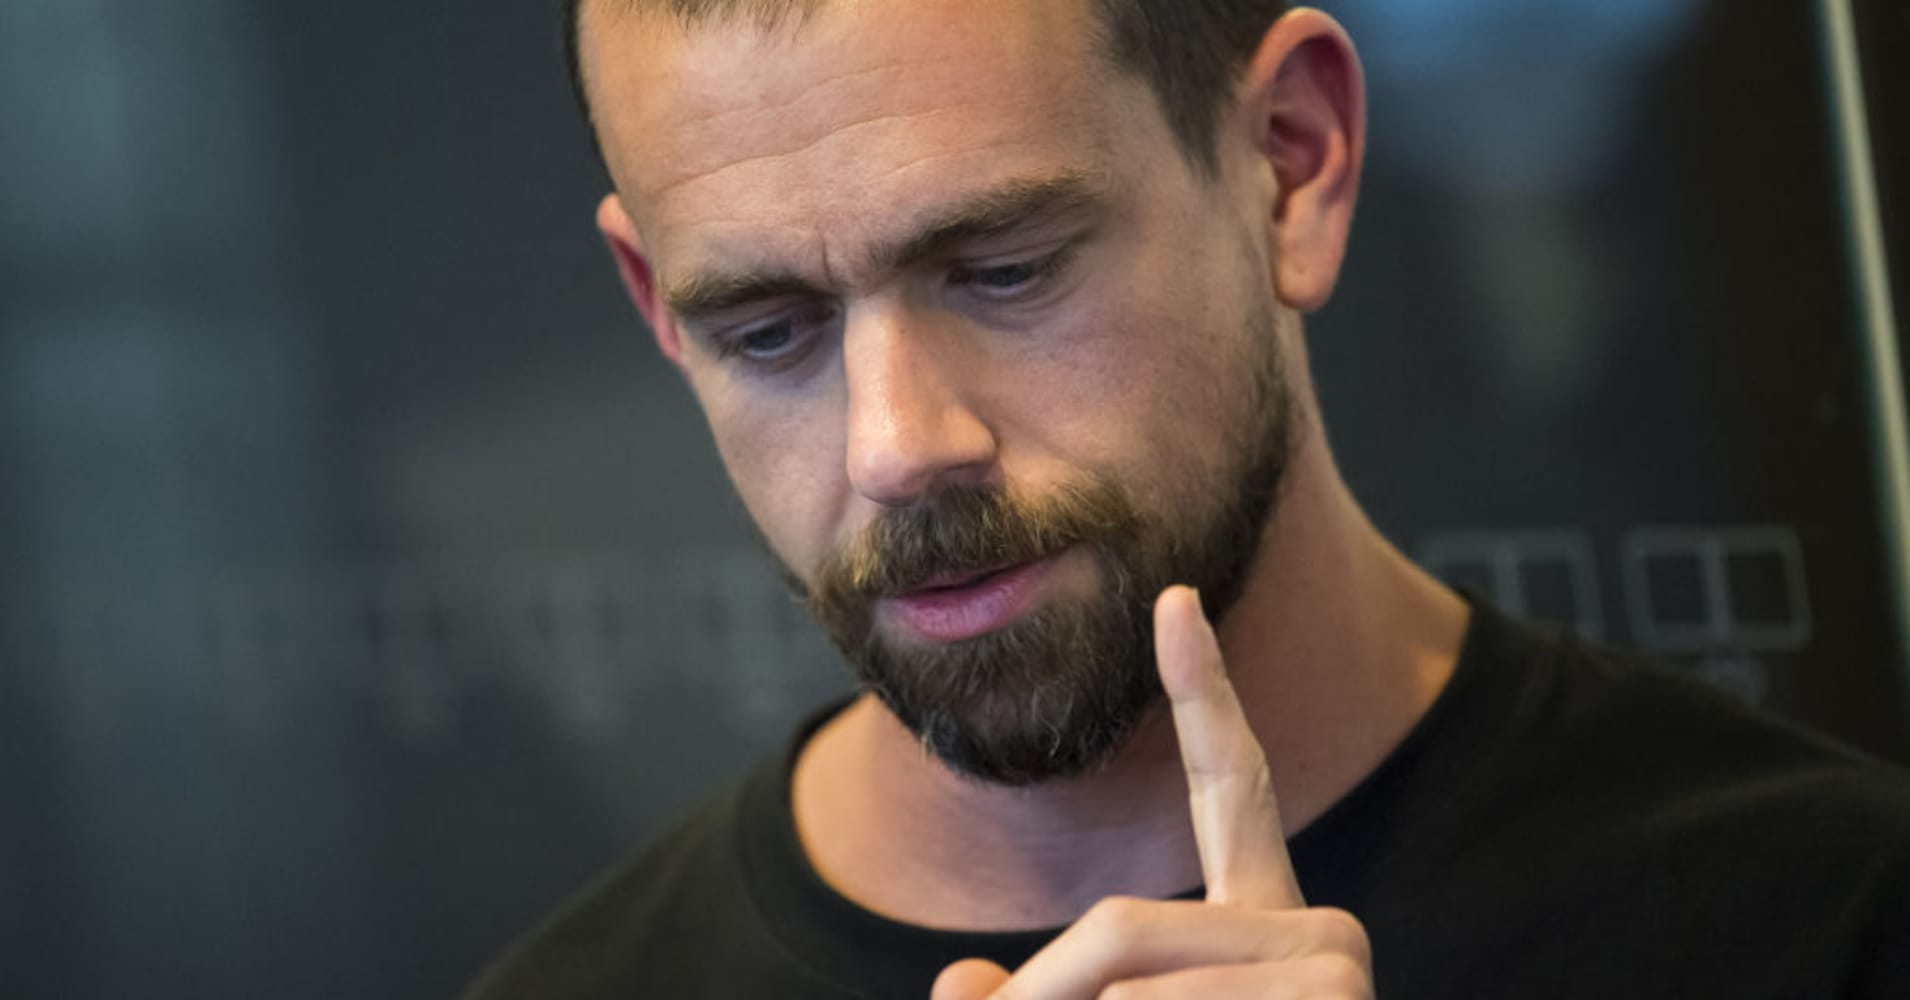 Breakingviews: Twitter will need more than just user growth for investors to stick around